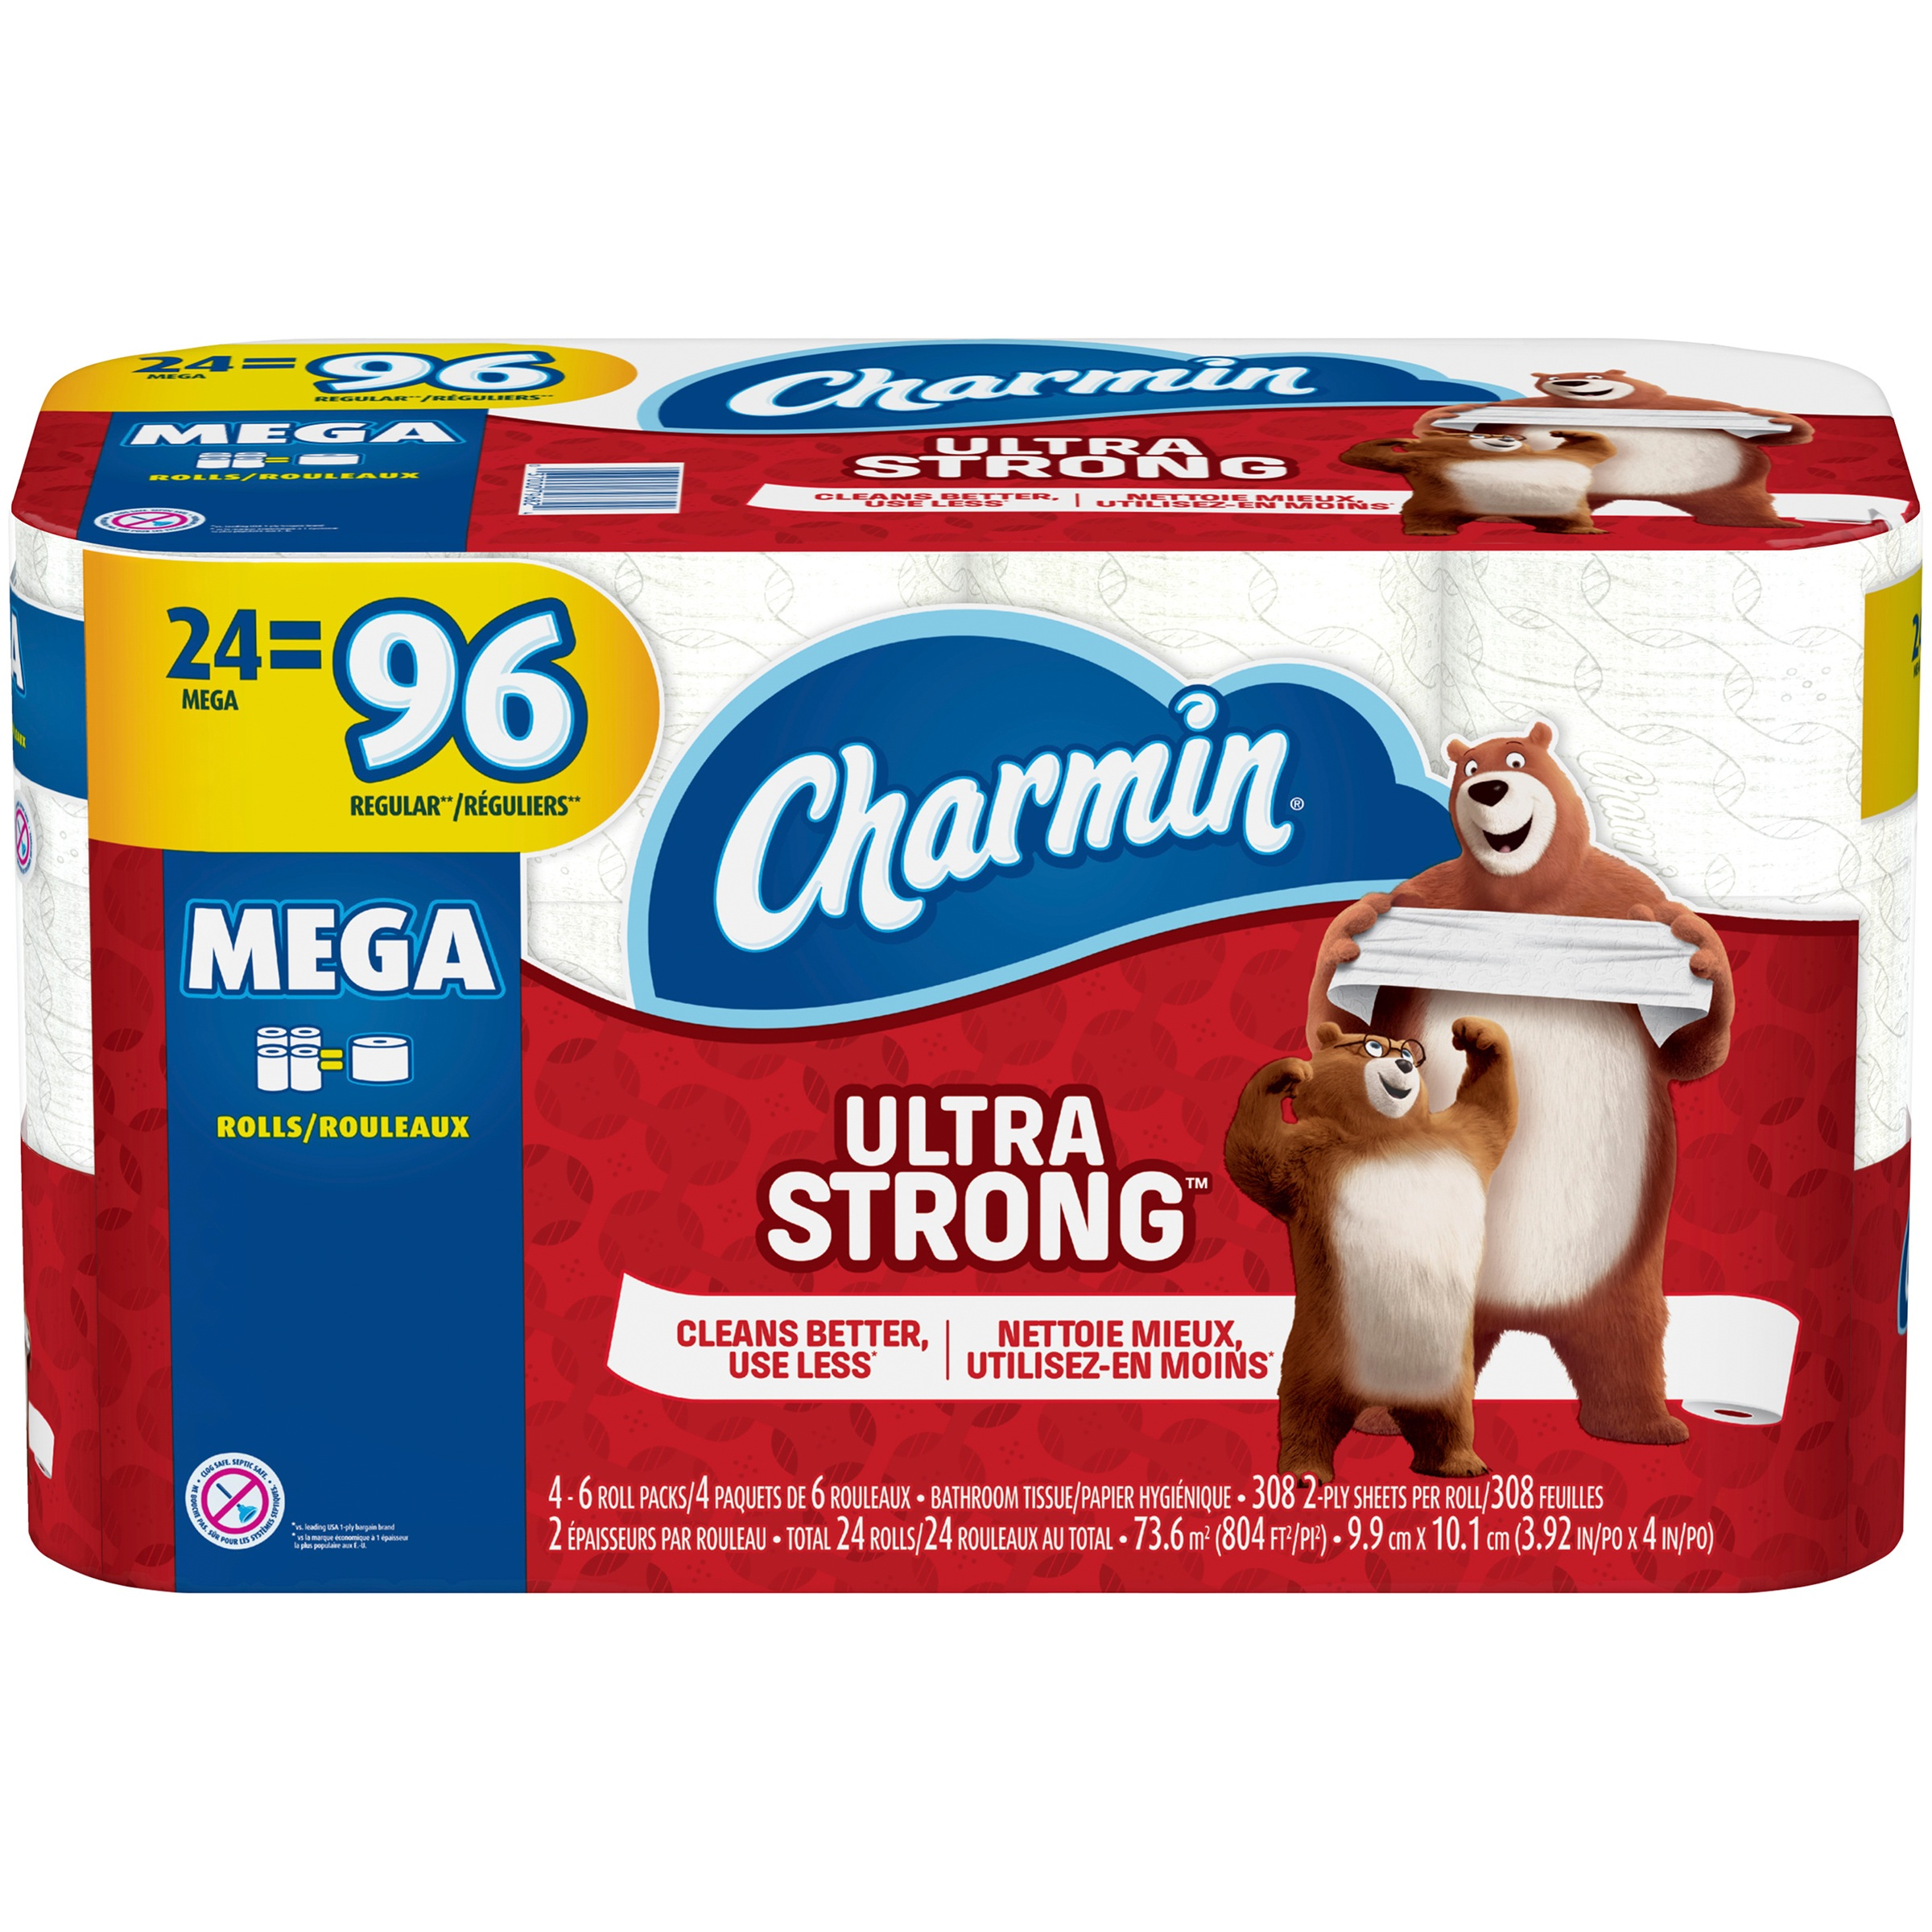 Charmin Ultra Strong Toilet Paper, 24 Mega Rolls